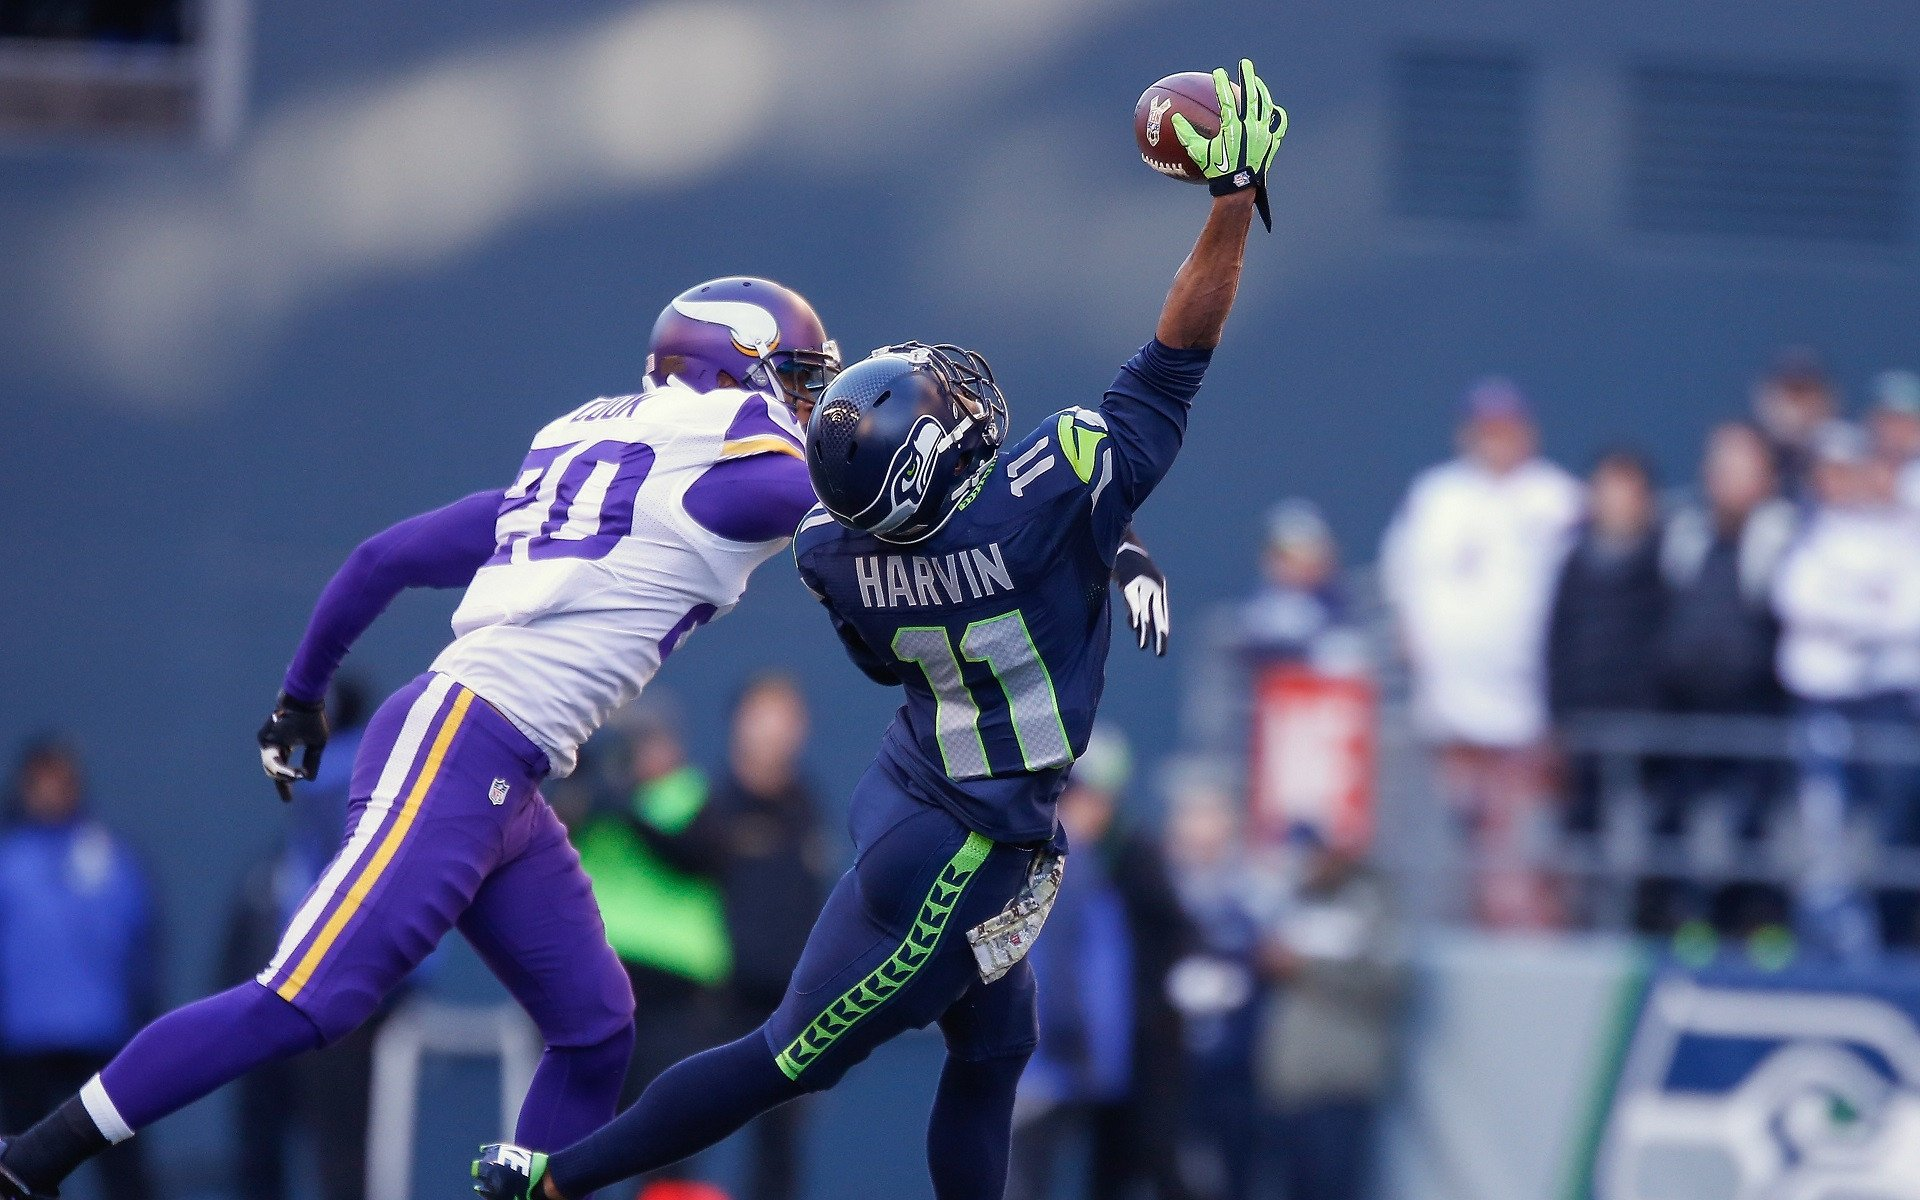 Cool Iphone X Wallpapers 2018 Seattle Seahawks Full Hd Wallpaper And Background Image